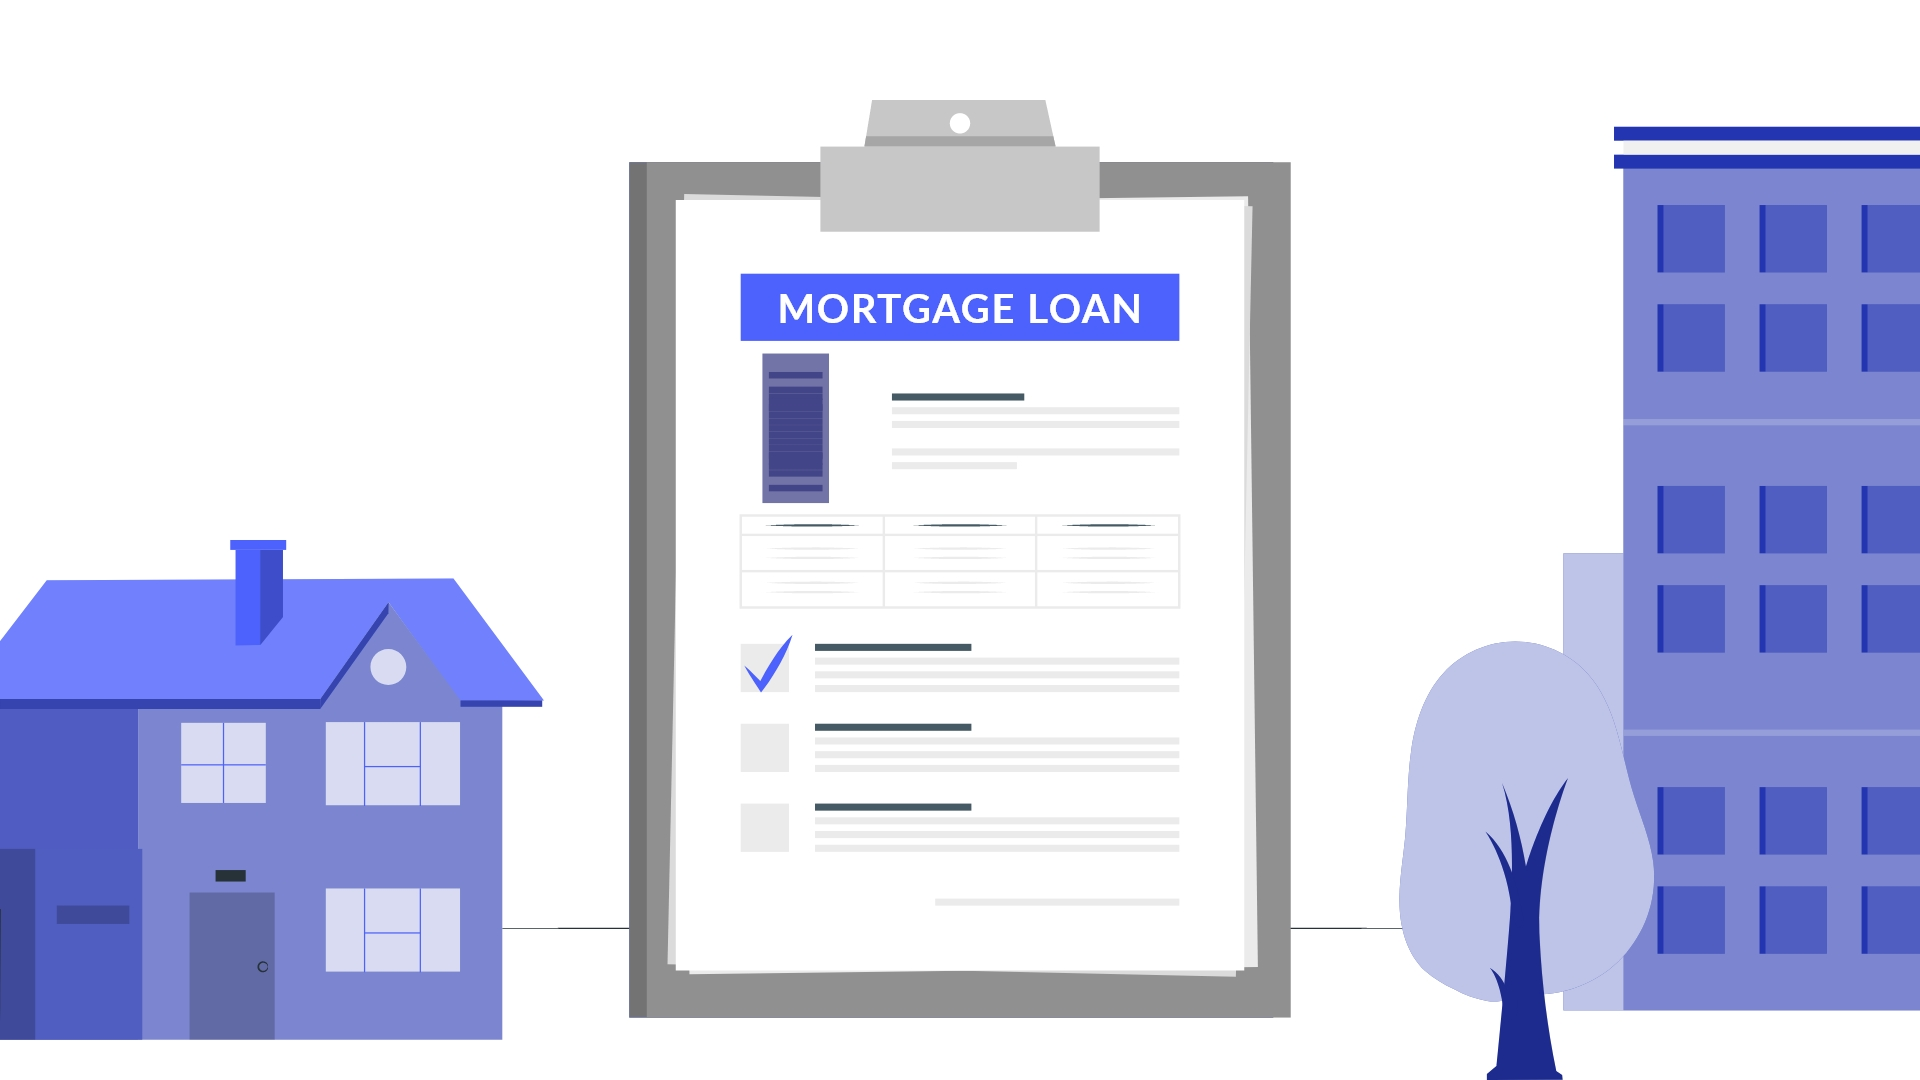 How to automate mortgage loan processing by automating data extraction for income verification documents